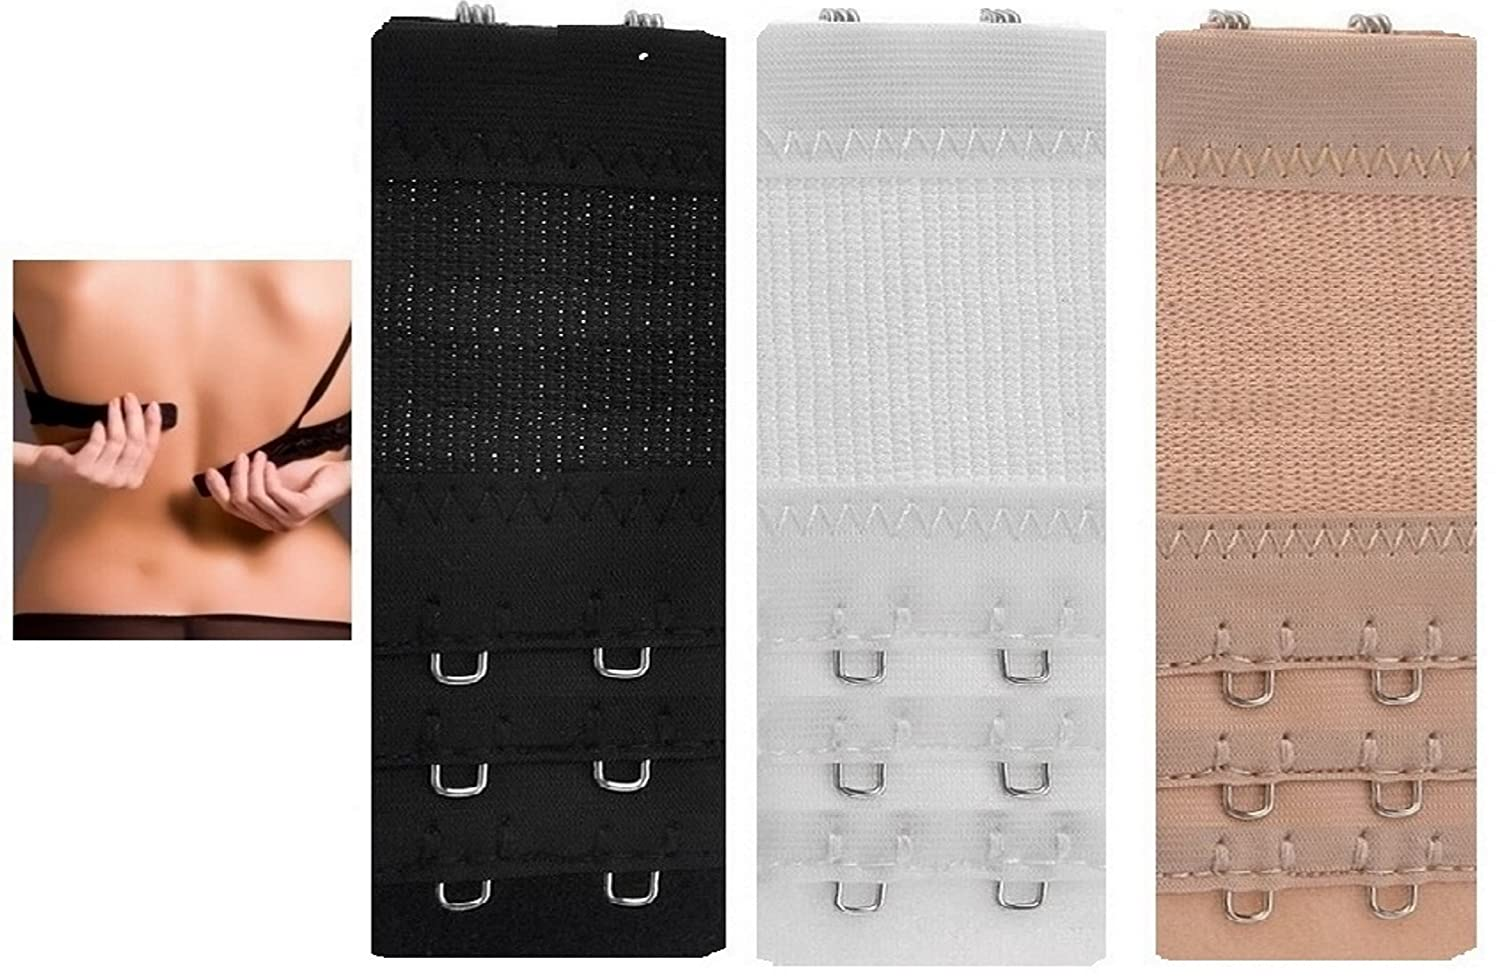 e082465e7ffec 3 Extenders Strap 3 x 2 Hooks Bra Extender Extension Strap in 3 Colours  (Black White Nude) 4cm  Amazon.co.uk  Computers   Accessories